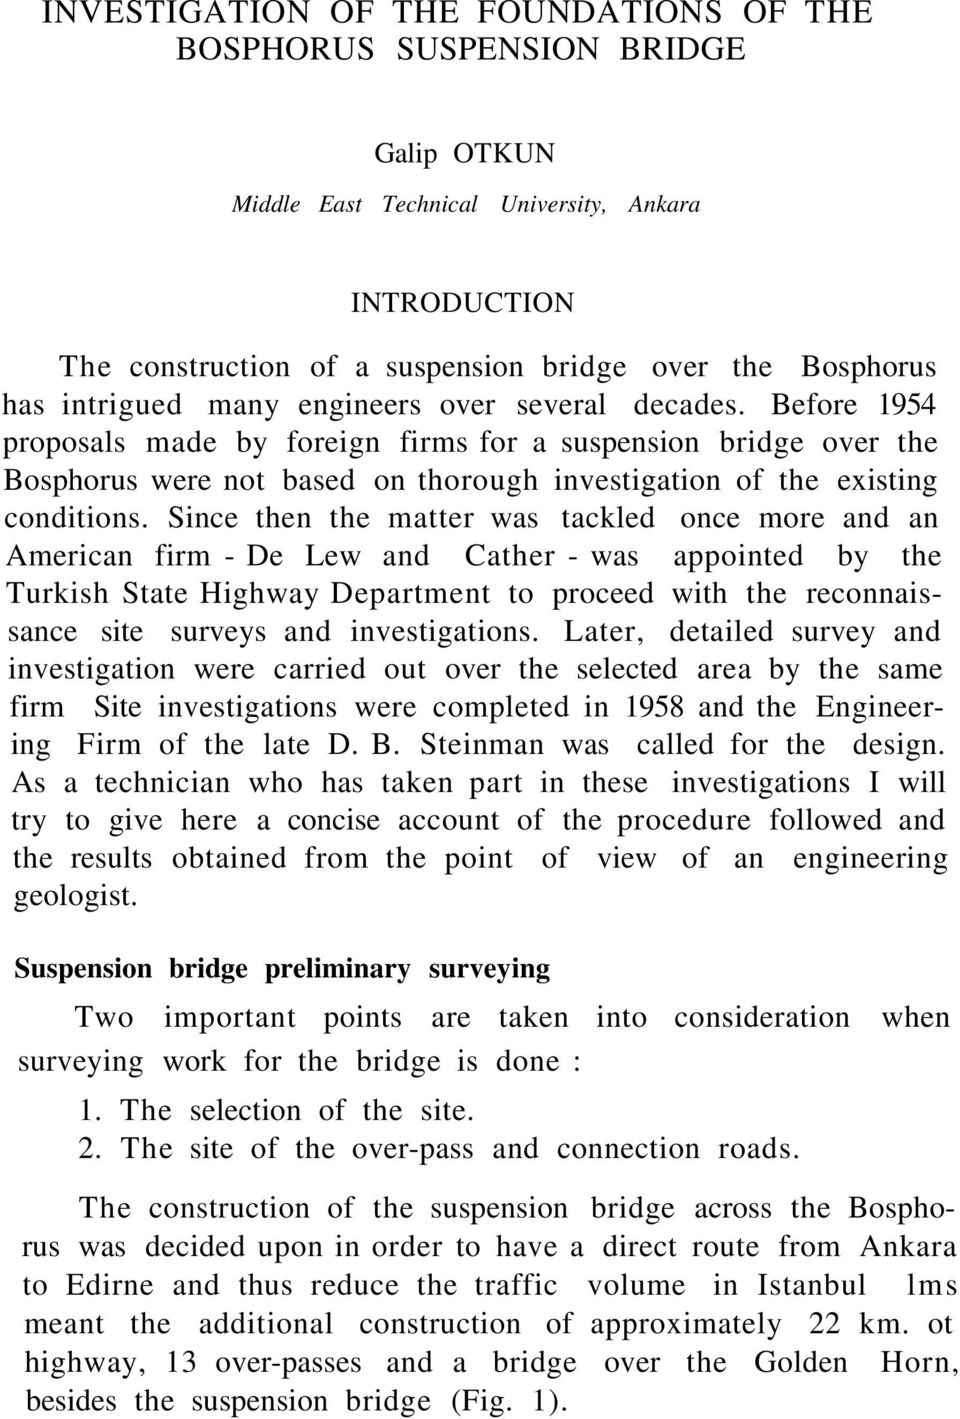 Before 1954 proposals made by foreign firms for a suspension bridge over the Bosphorus were not based on thorough investigation of the existing conditions.